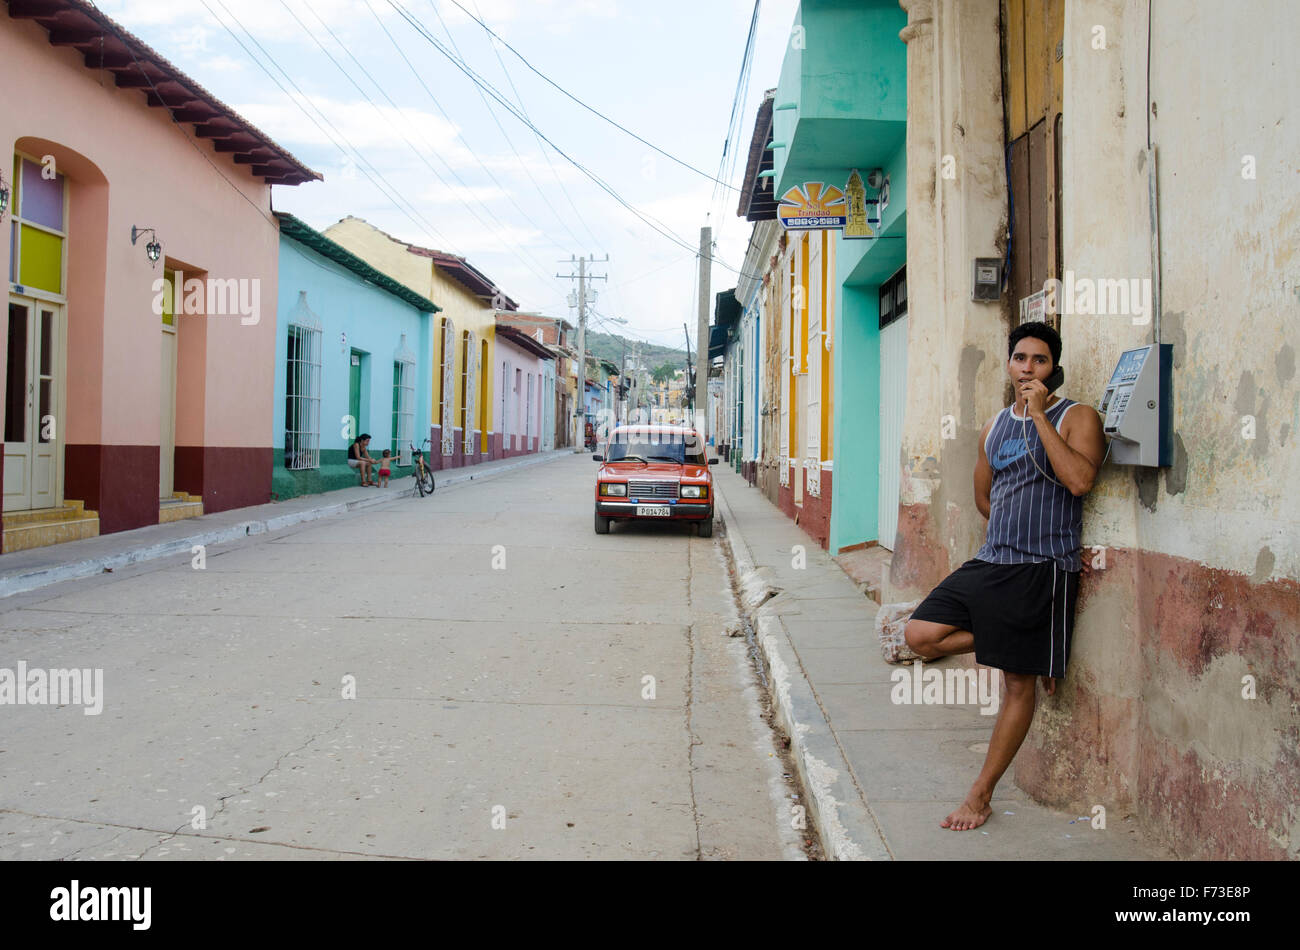 A man talks on a pay phone in Trinidad, Cuba. - Stock Image